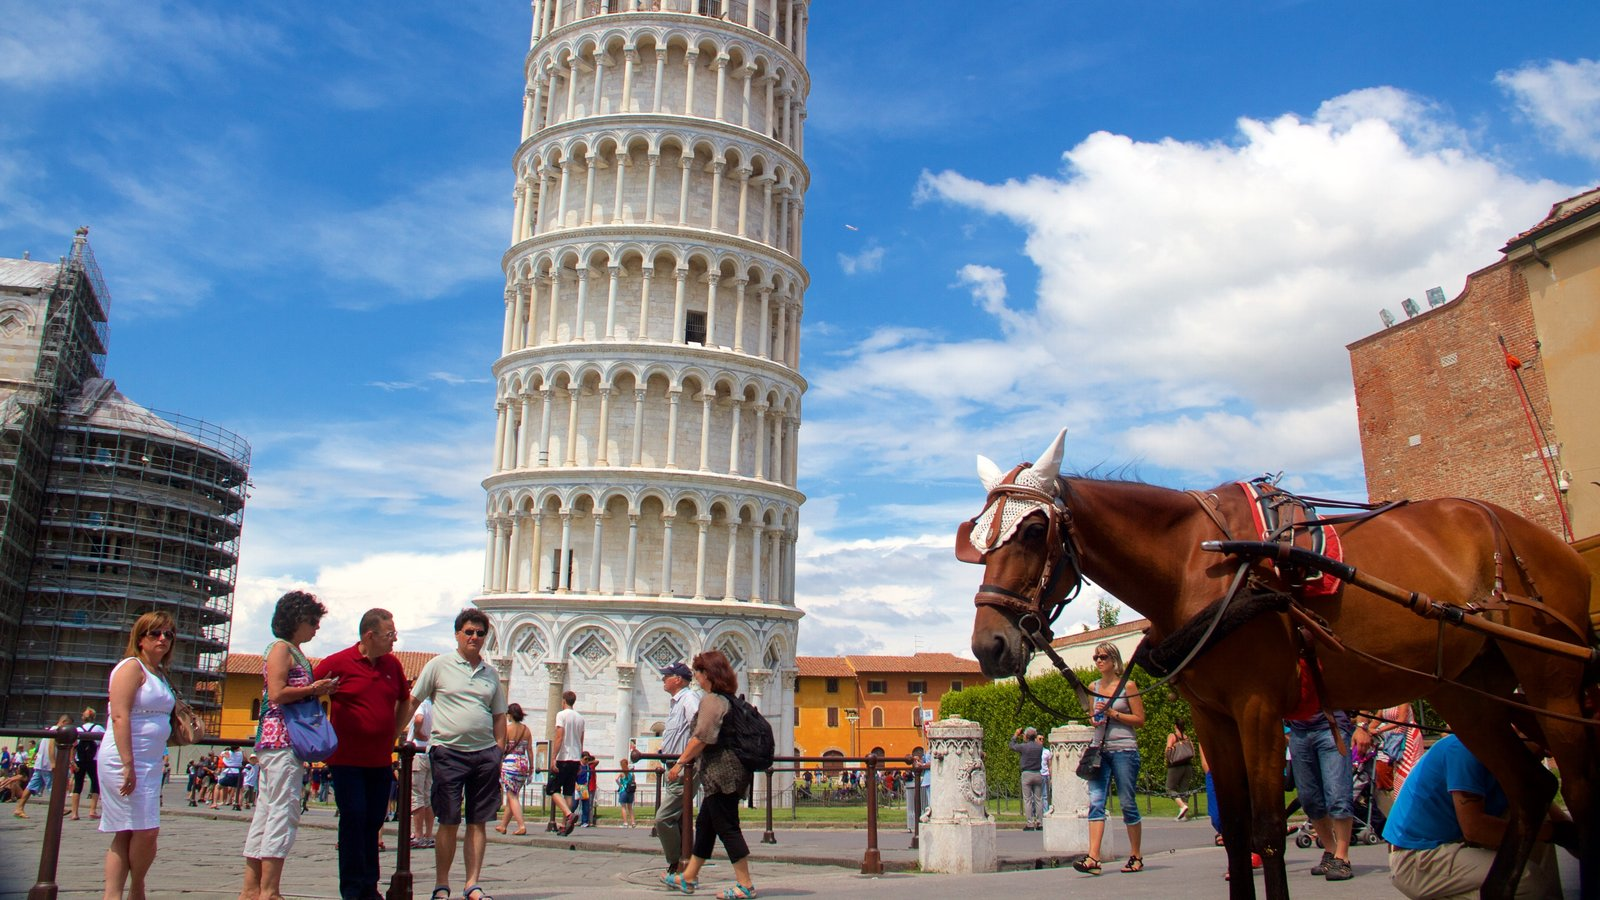 Leaning Tower showing heritage architecture, a monument and land animals